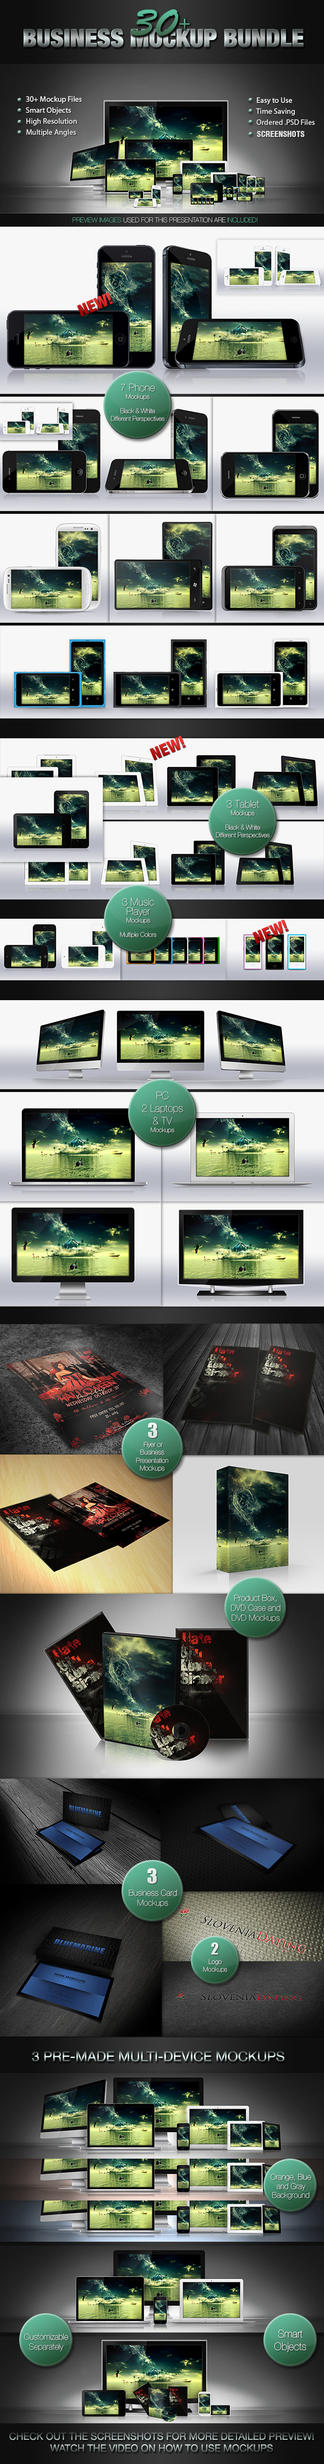 30+ Mockup Bundle by Jones500